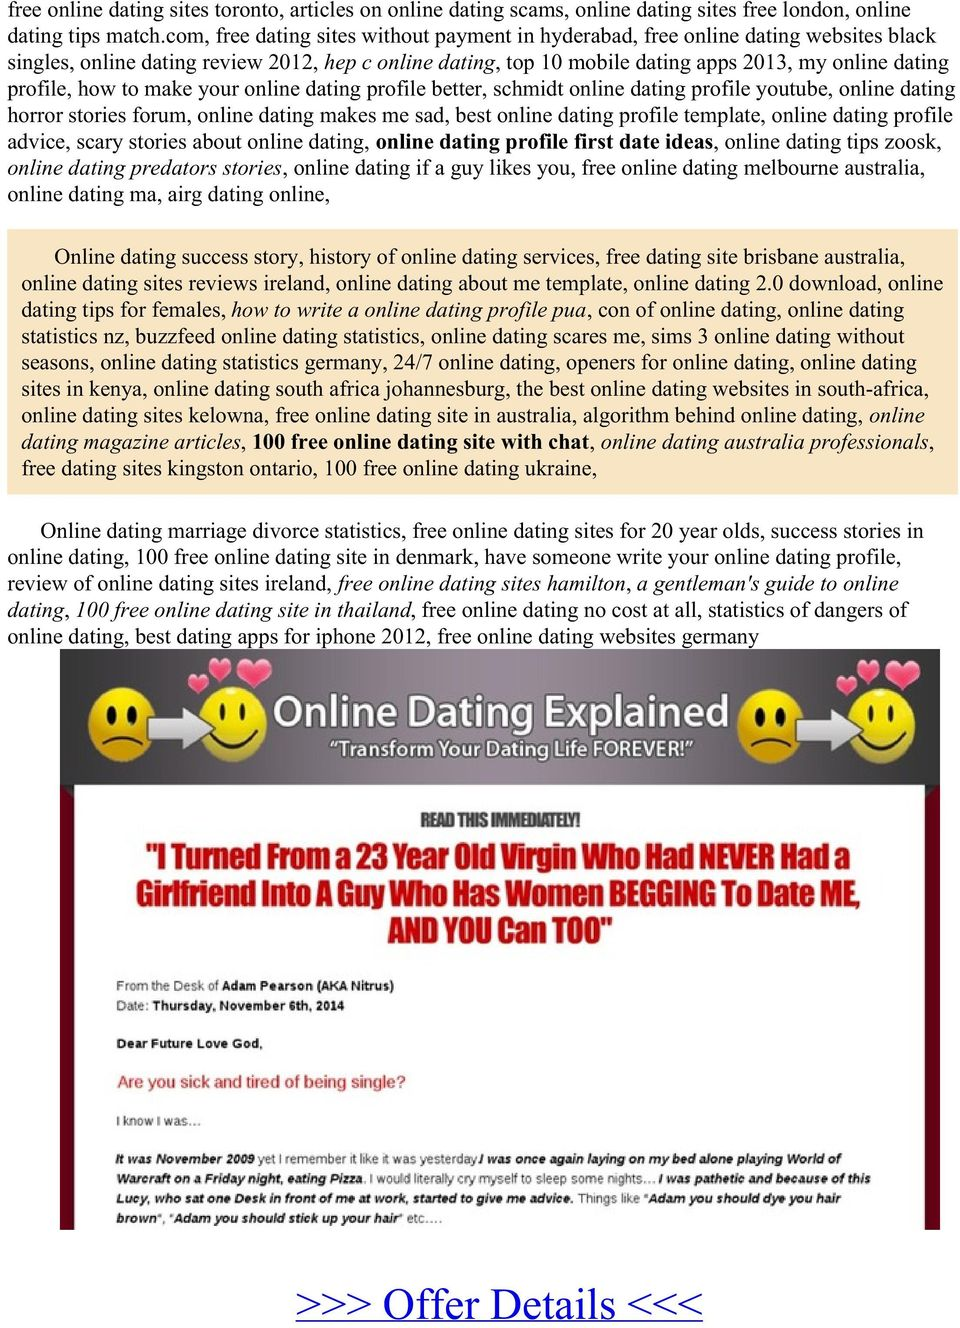 profile, how to make your online dating profile better, schmidt online dating profile youtube, online dating horror stories forum, online dating makes me sad, best online dating profile template,